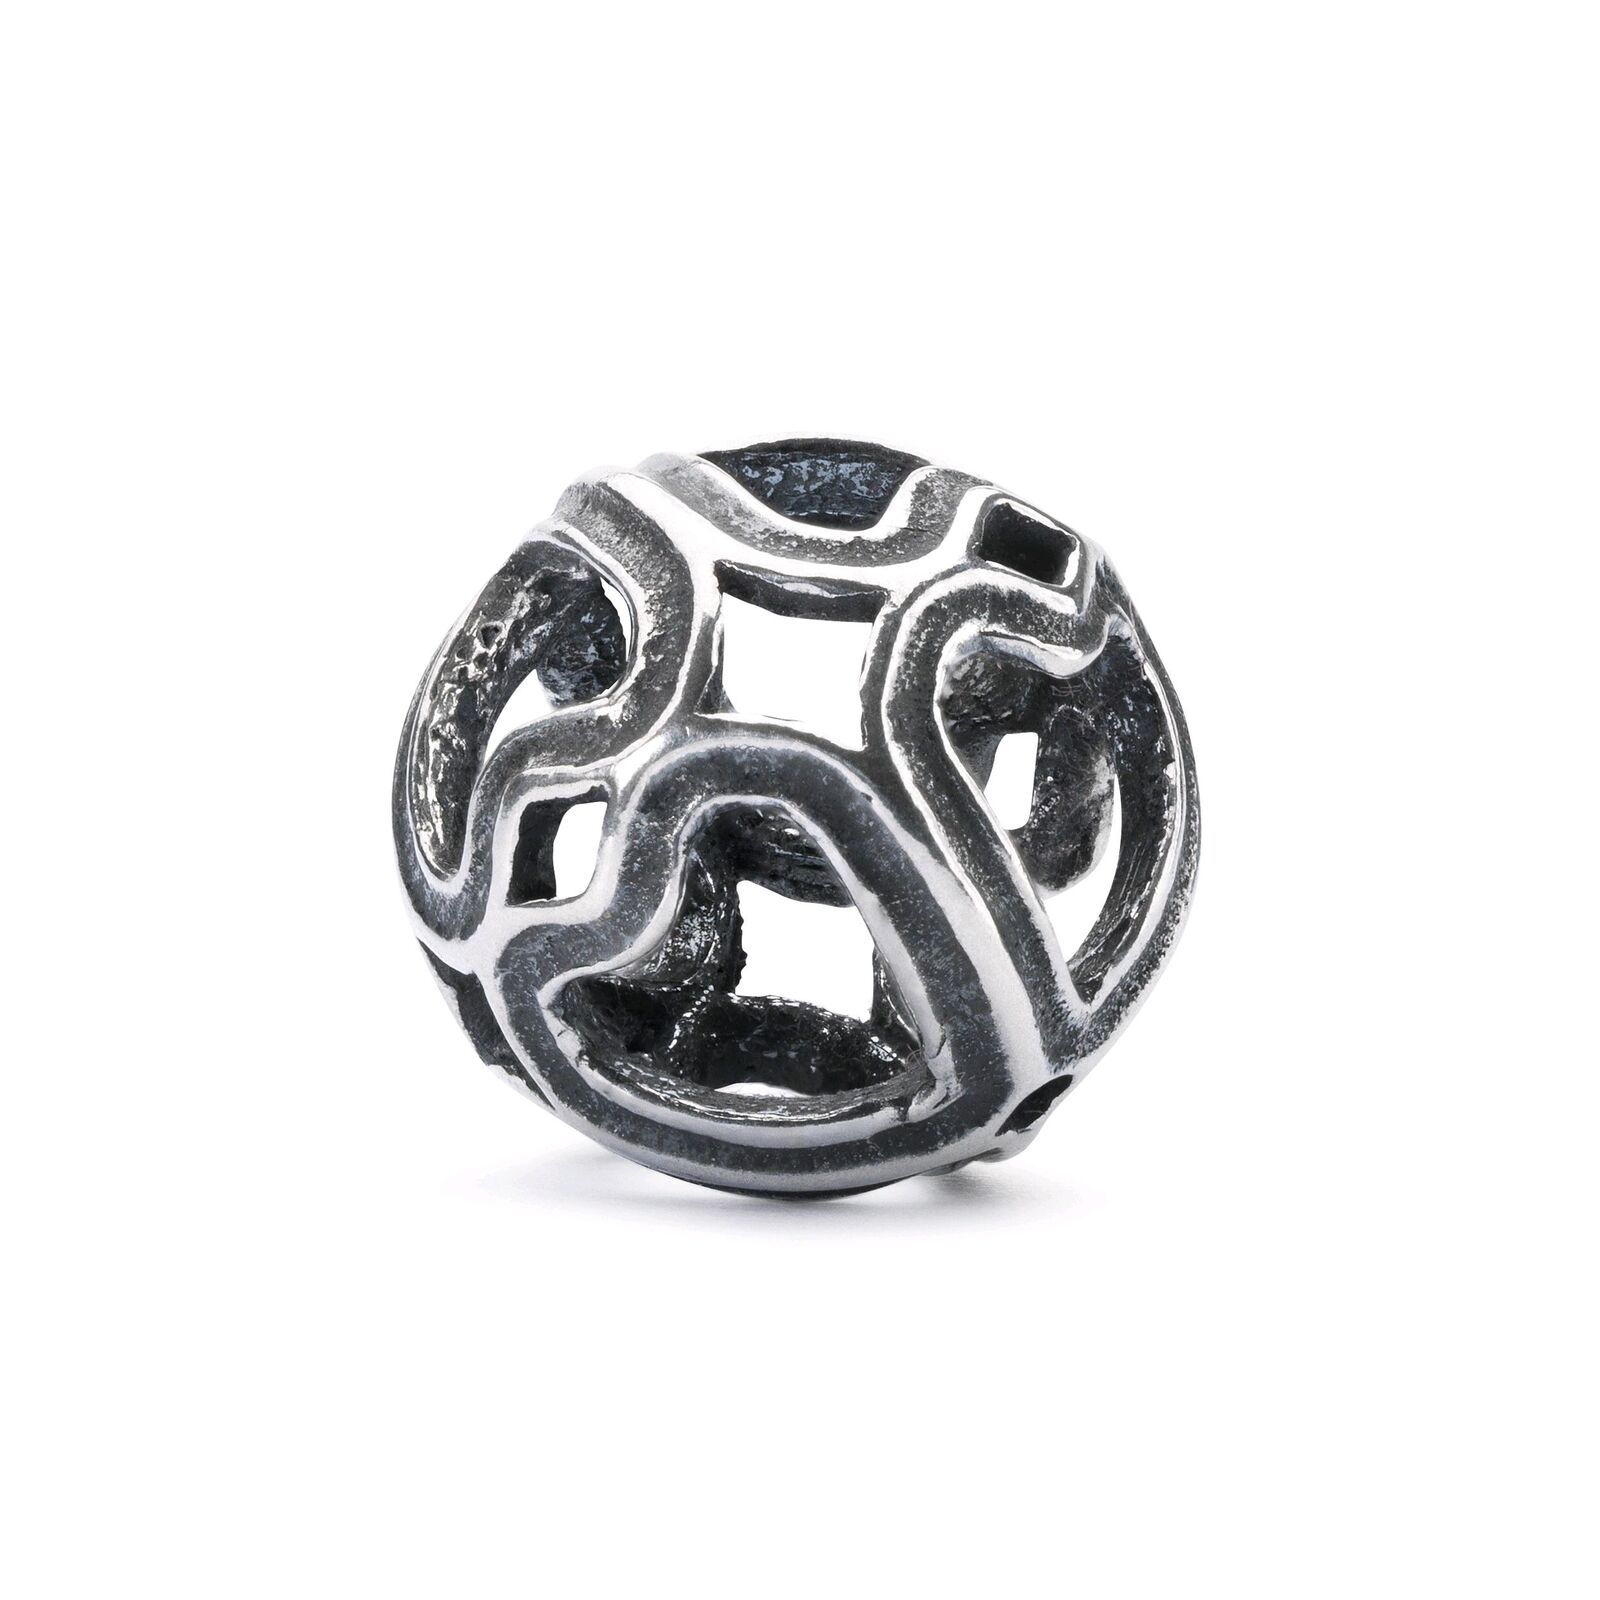 TROLLBEADS ORIGINAL BEADS silver MELODIA D'AMORE TAGBE-20159